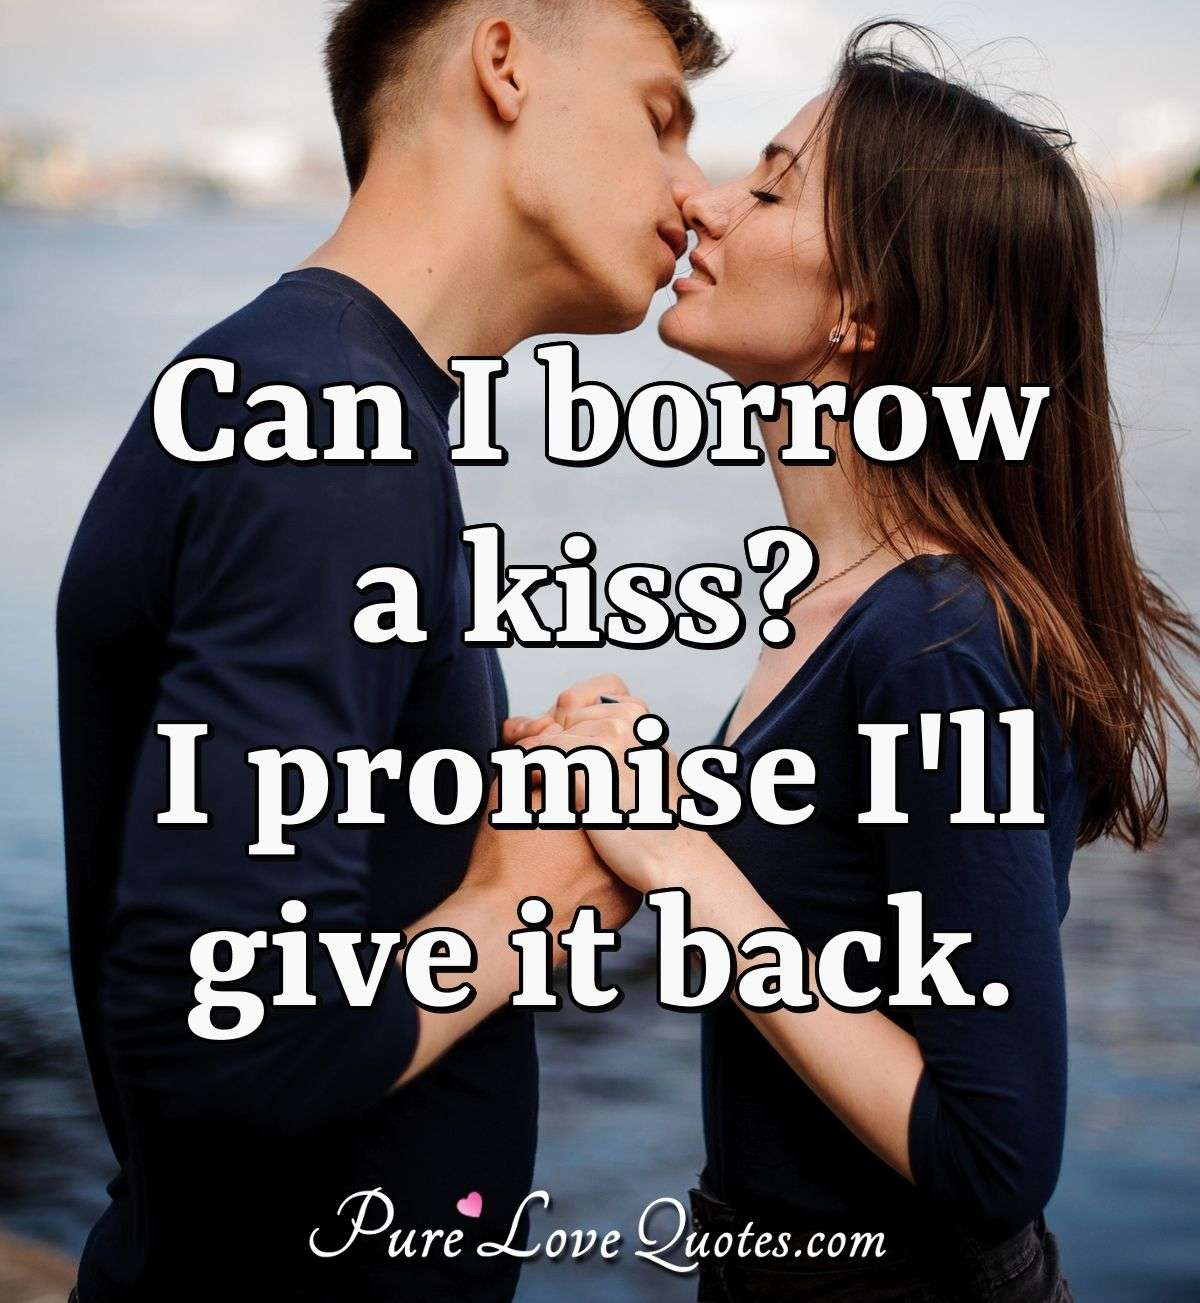 Can I borrow a kiss? I promise I'll give it back. - Anonymous